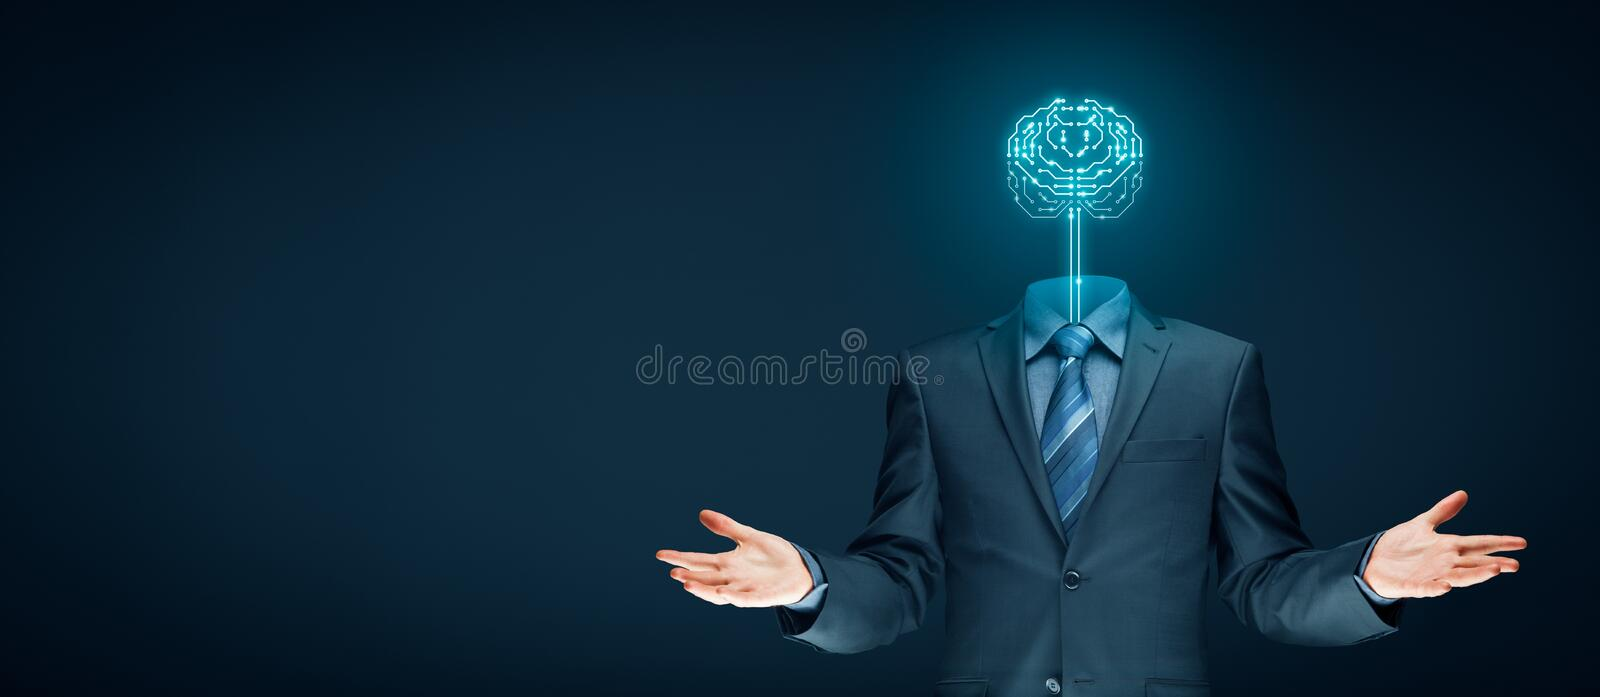 Artificial intelligence concept. Brain with printed circuit board PCB design and businessman representing artificial intelligence AI, data mining, machine and royalty free stock photo